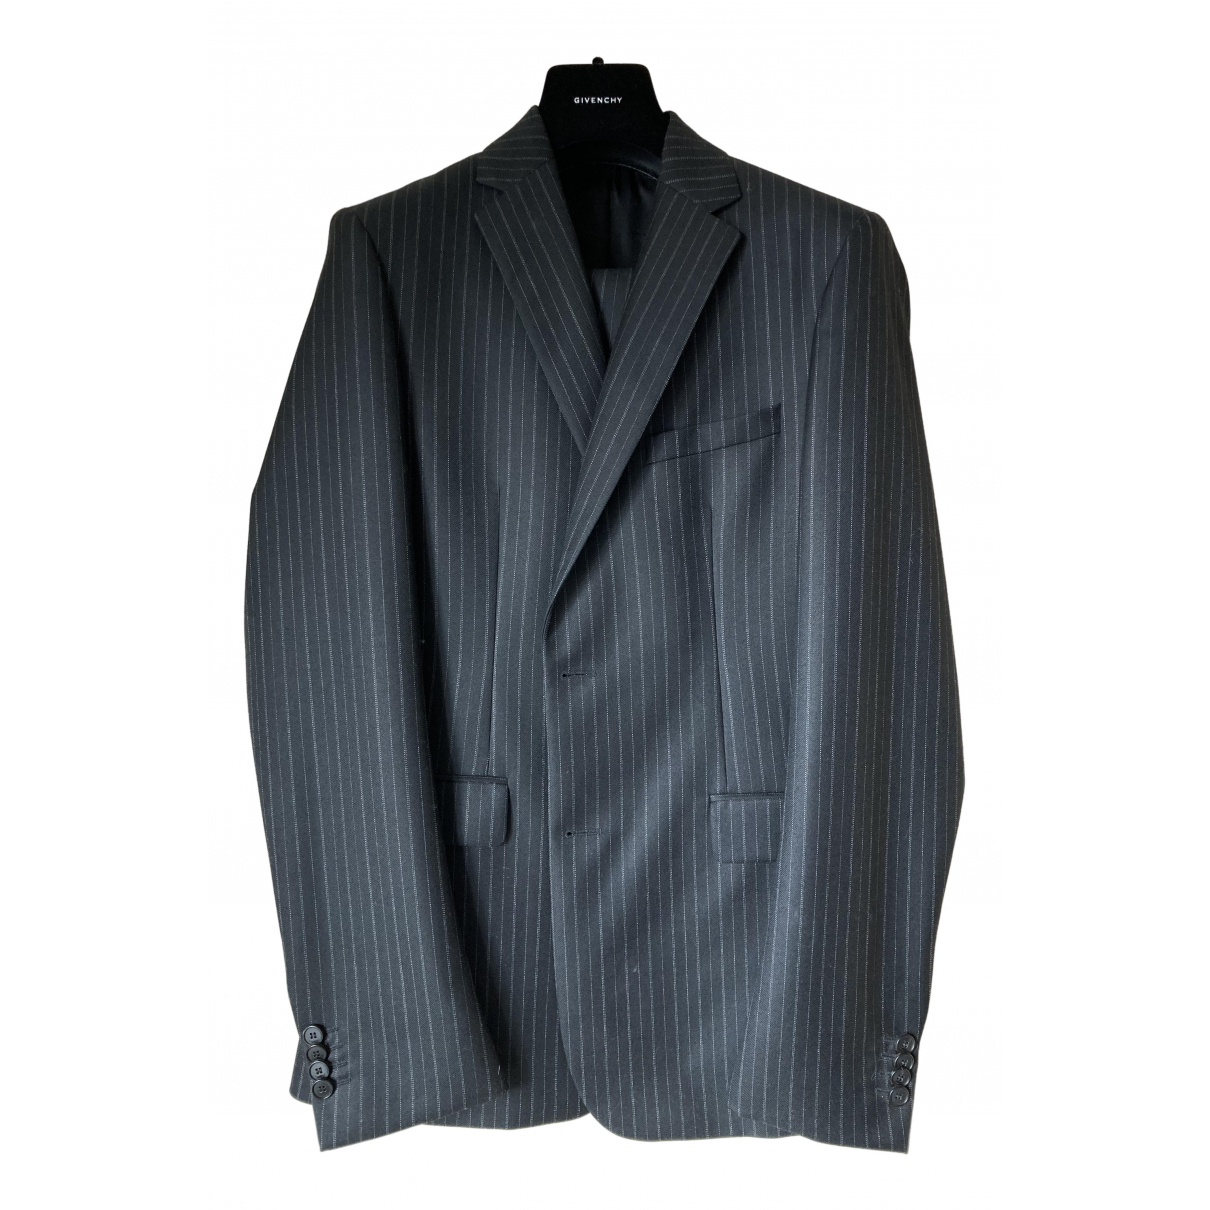 Givenchy N Grey Wool Suits for Men 48 FR